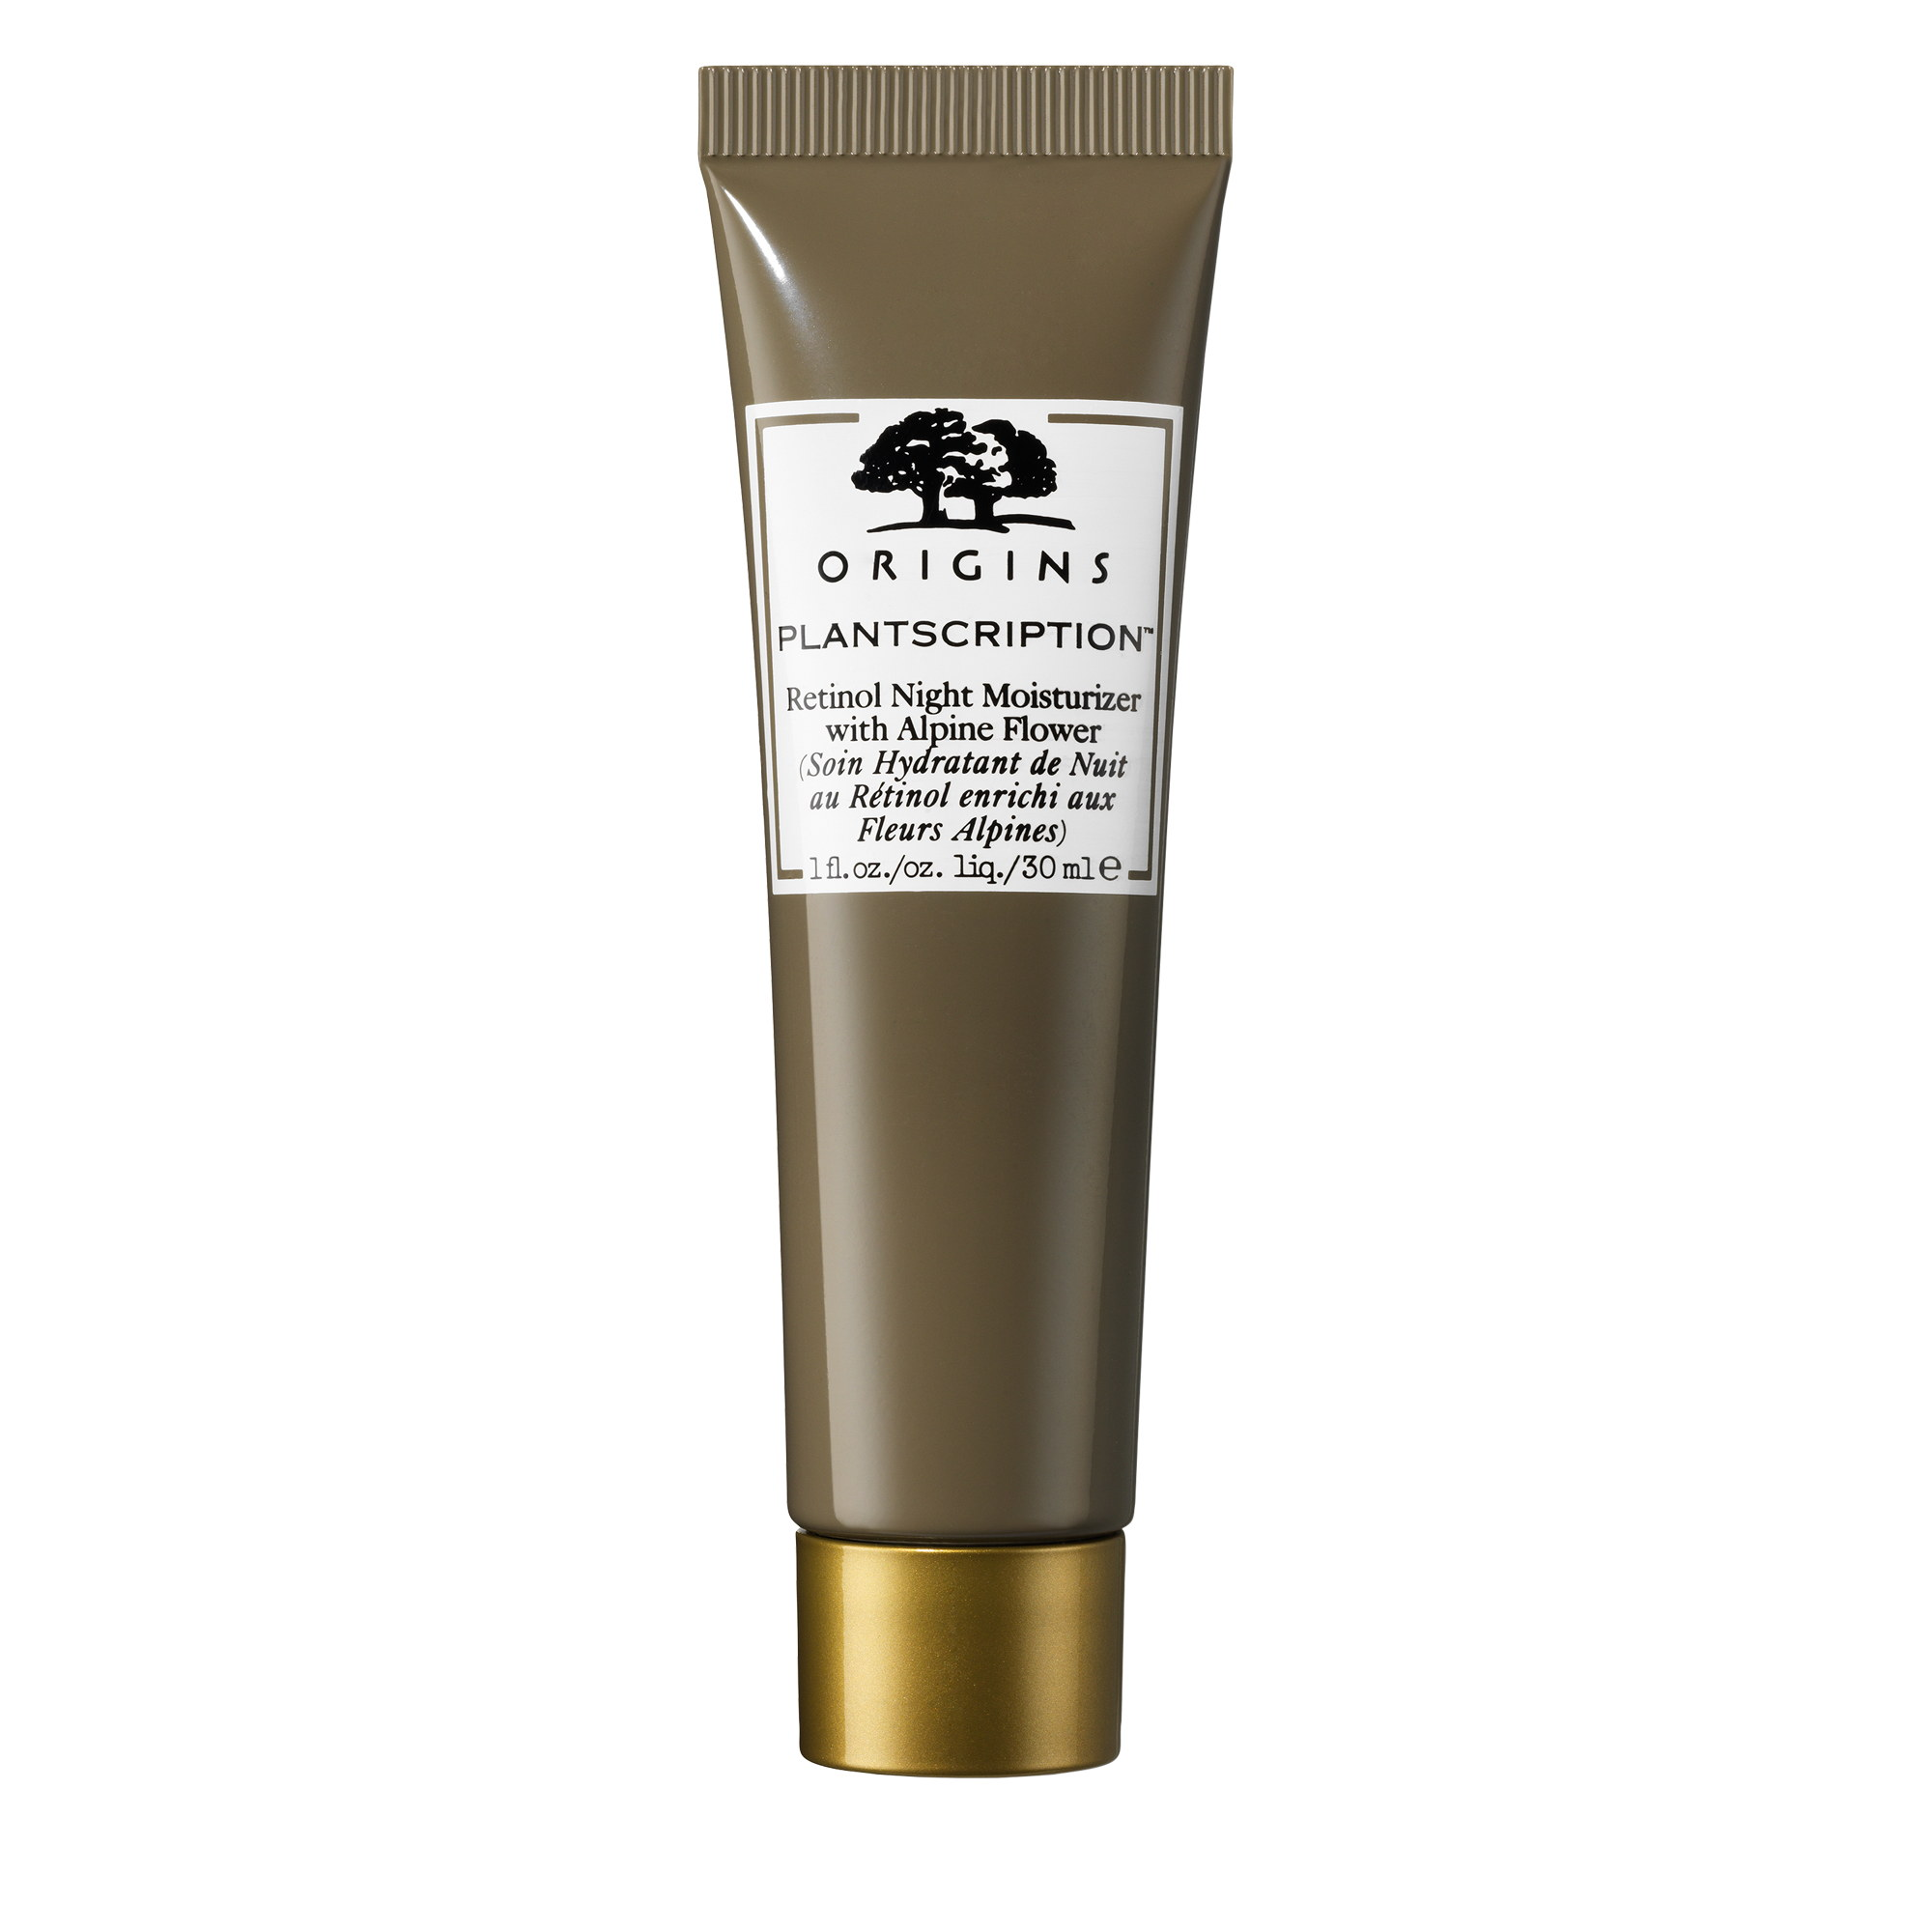 Plantscription Retinol Night Moisturizer